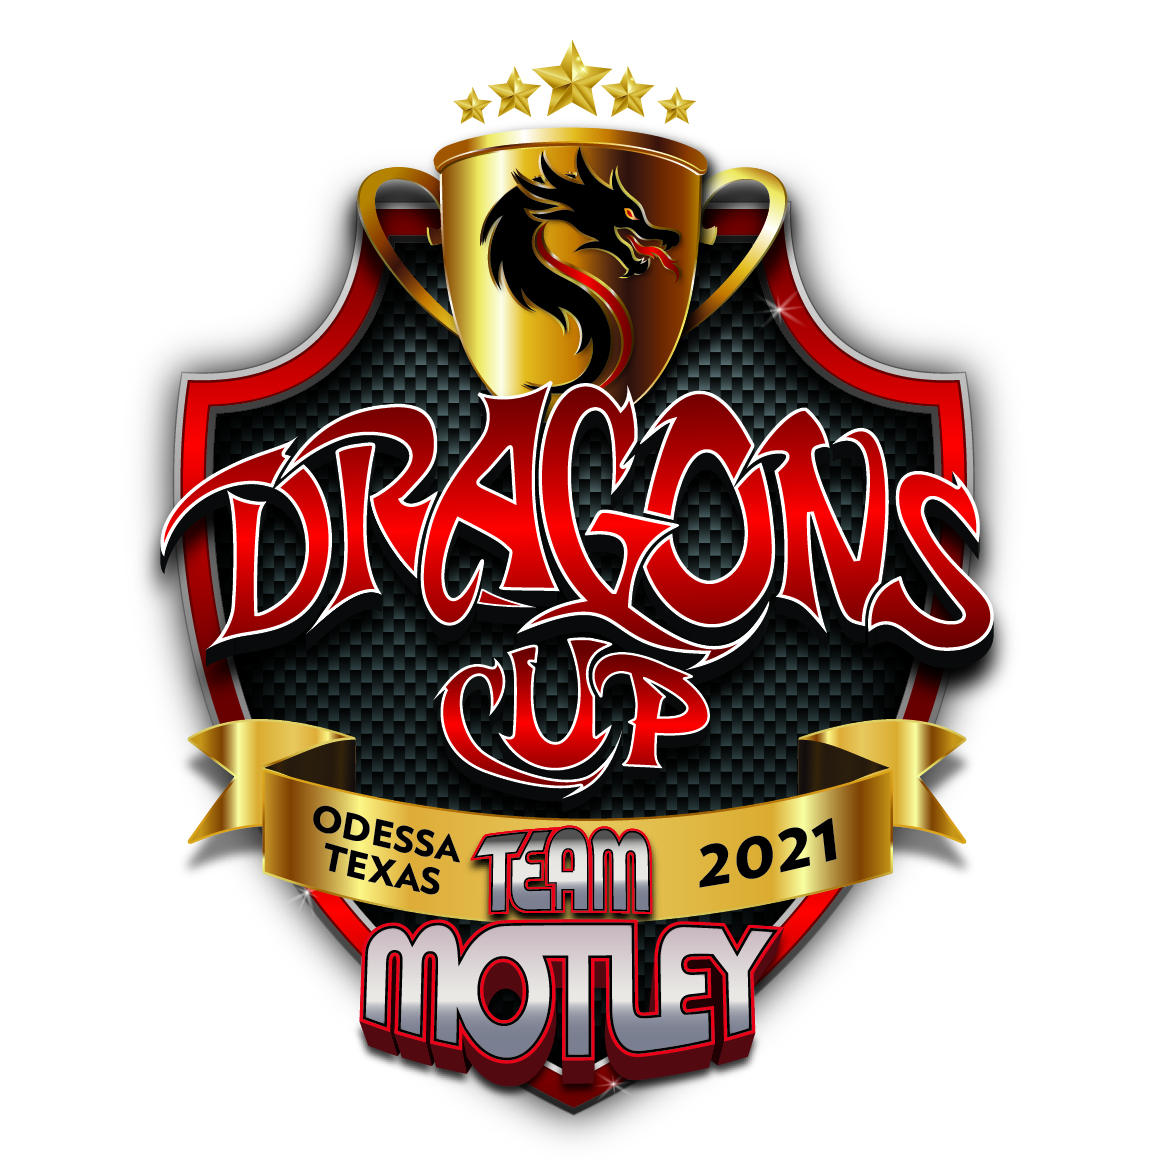 2021 Dragons Cup